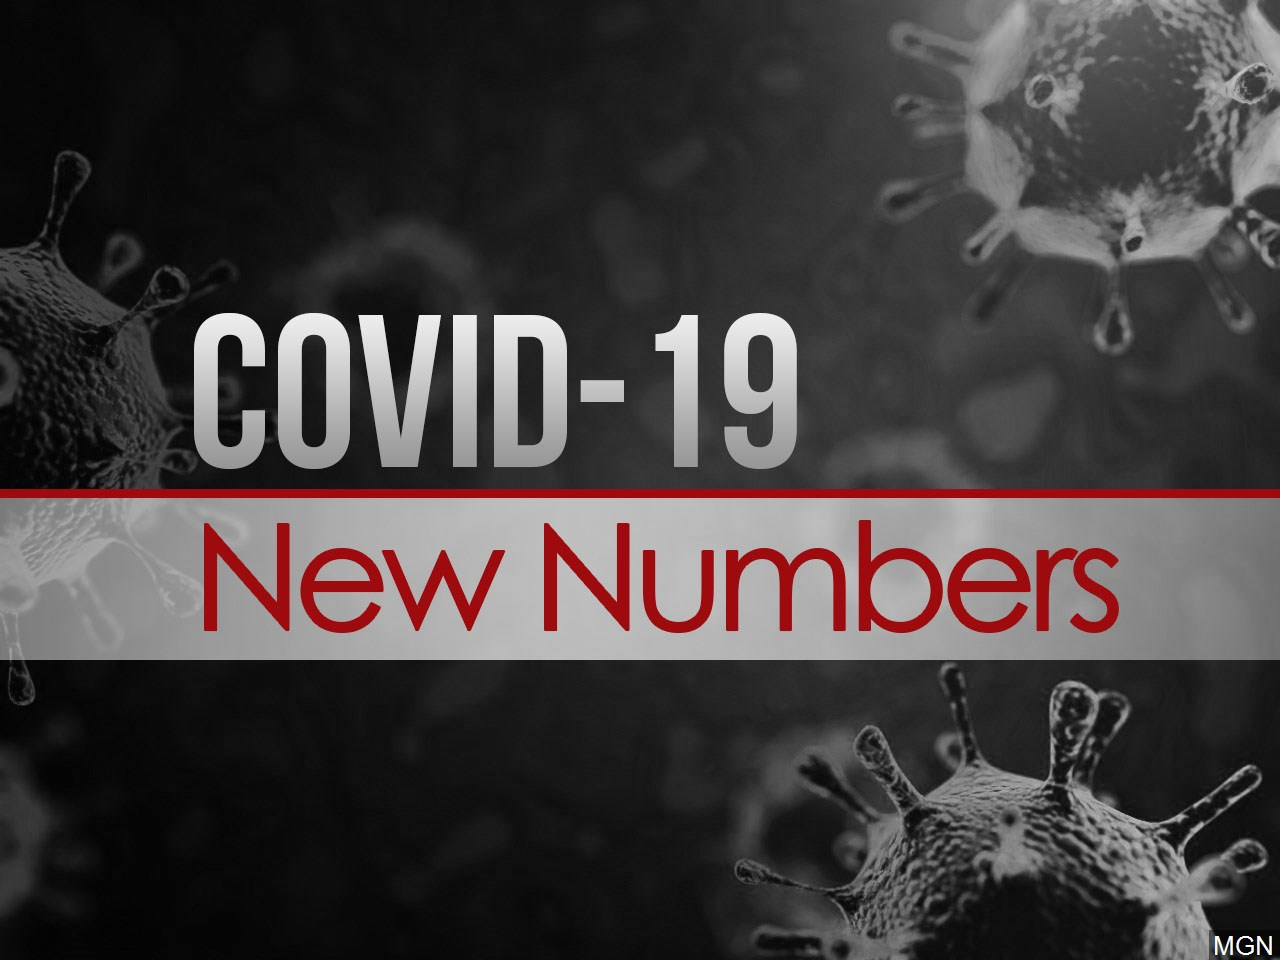 20,145 COVID-19 cases confirmed in TN, 336 deaths, 1,583 hospitalizations - WBBJ TV